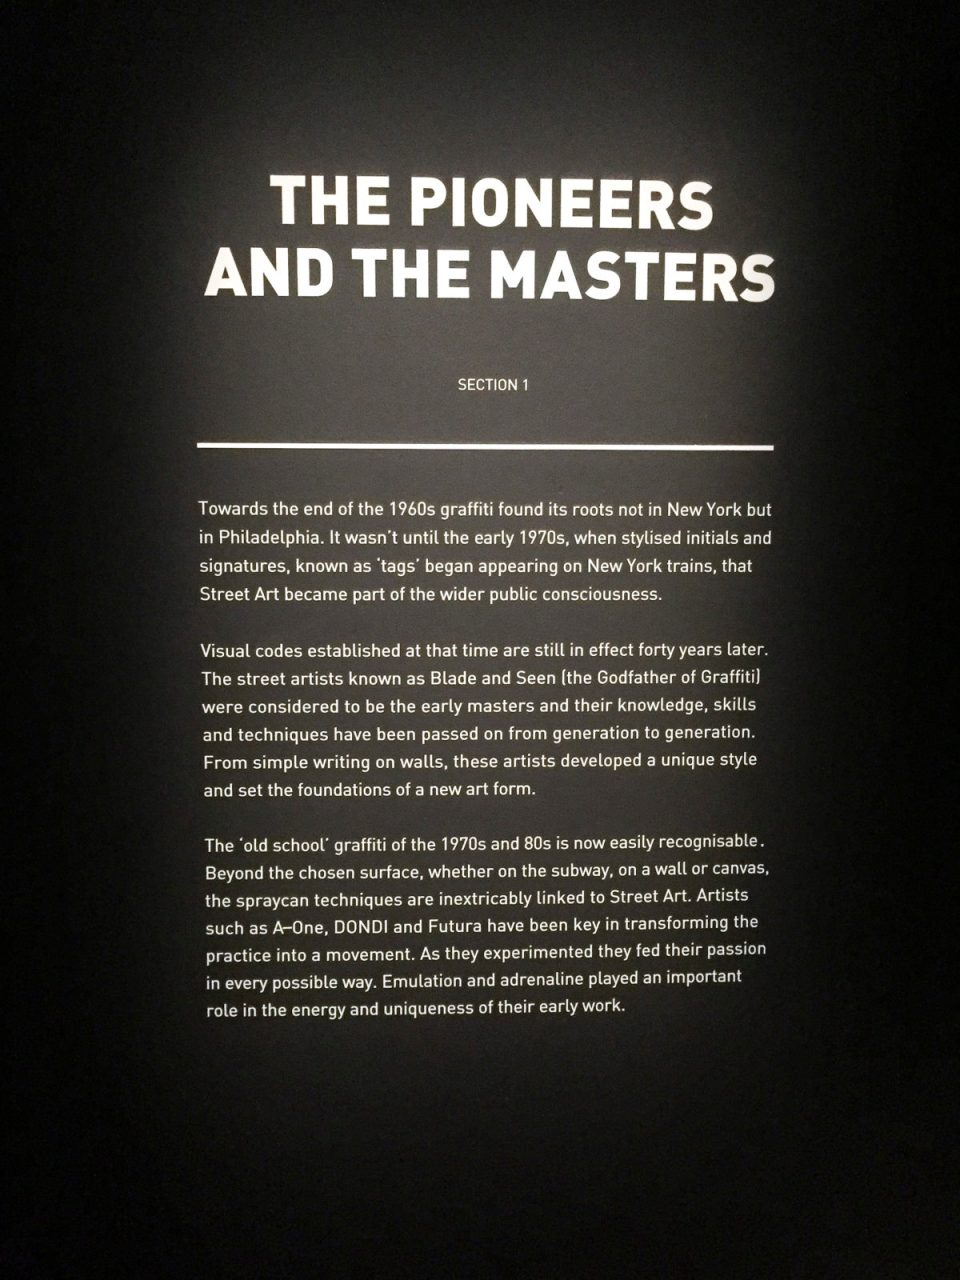 The Pioneers and the Masters at Art From the Streets exhibition at the ArtScience Museum, Singapore.